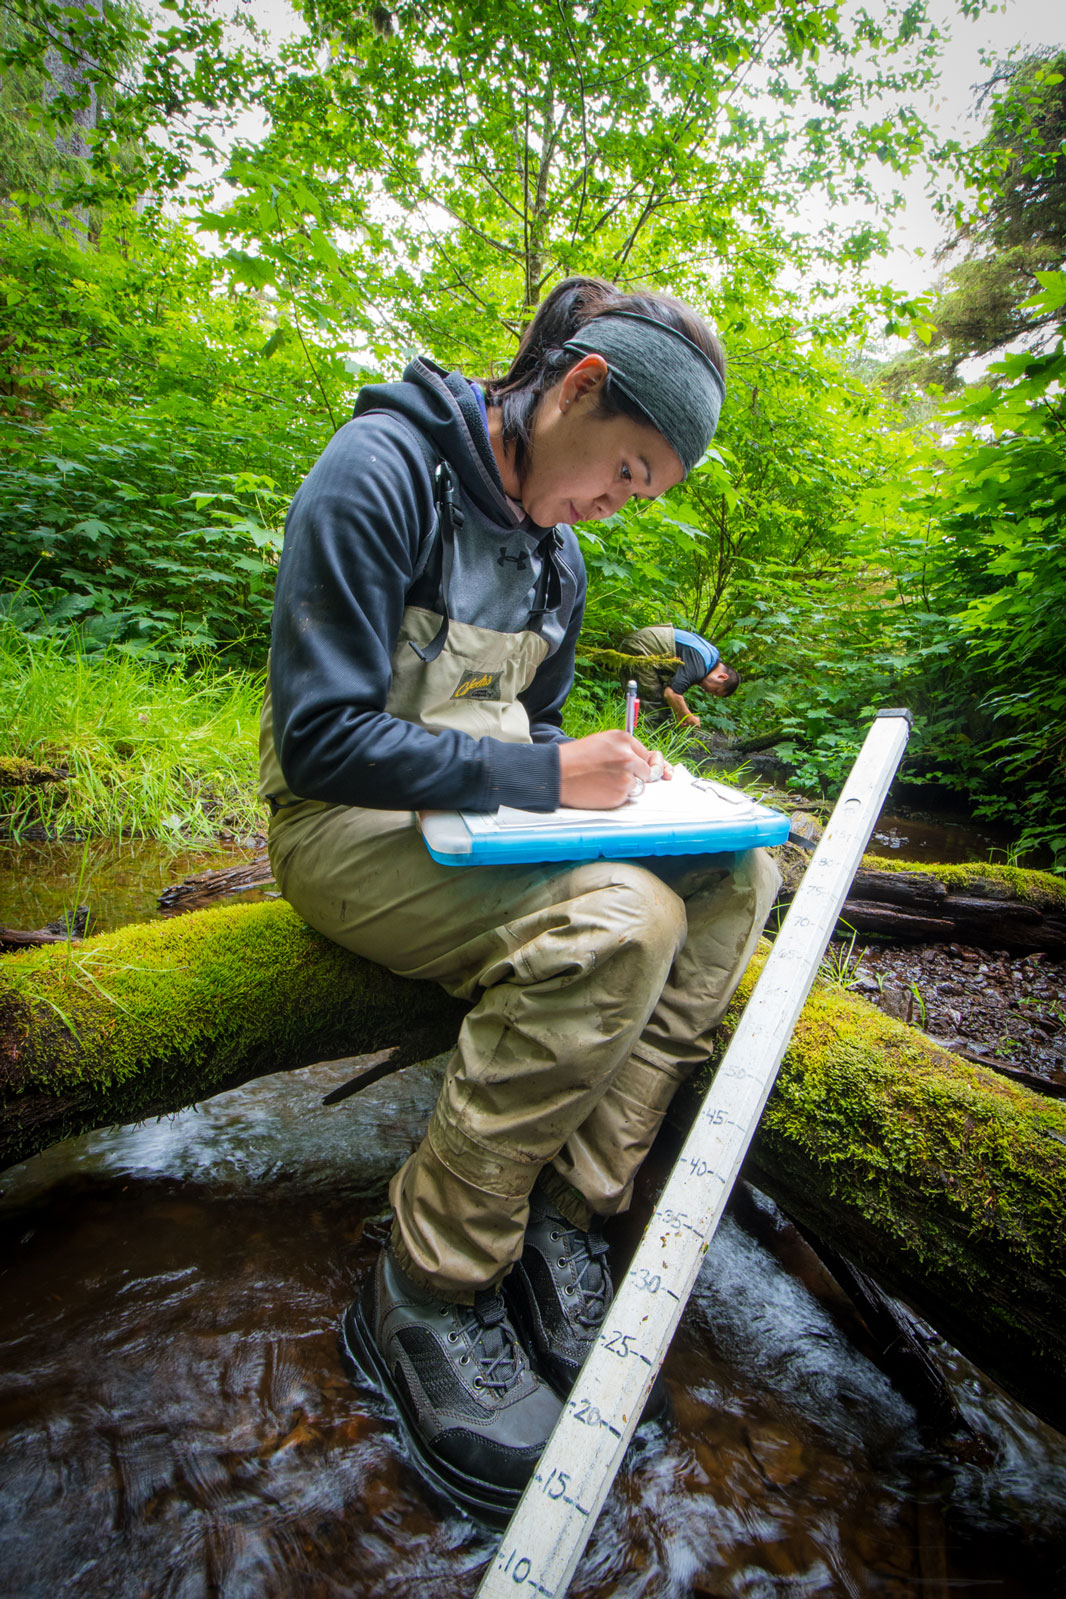 Melanie Kadake was the first high school mentee of Wendy Smythe under the Hydaburg Geoscience Education Program. Today, she is a scientist and the environmental planner for her local tribe. She spends summers monitoring the health of salmon subsistence streams for her home community of Hydaburg.